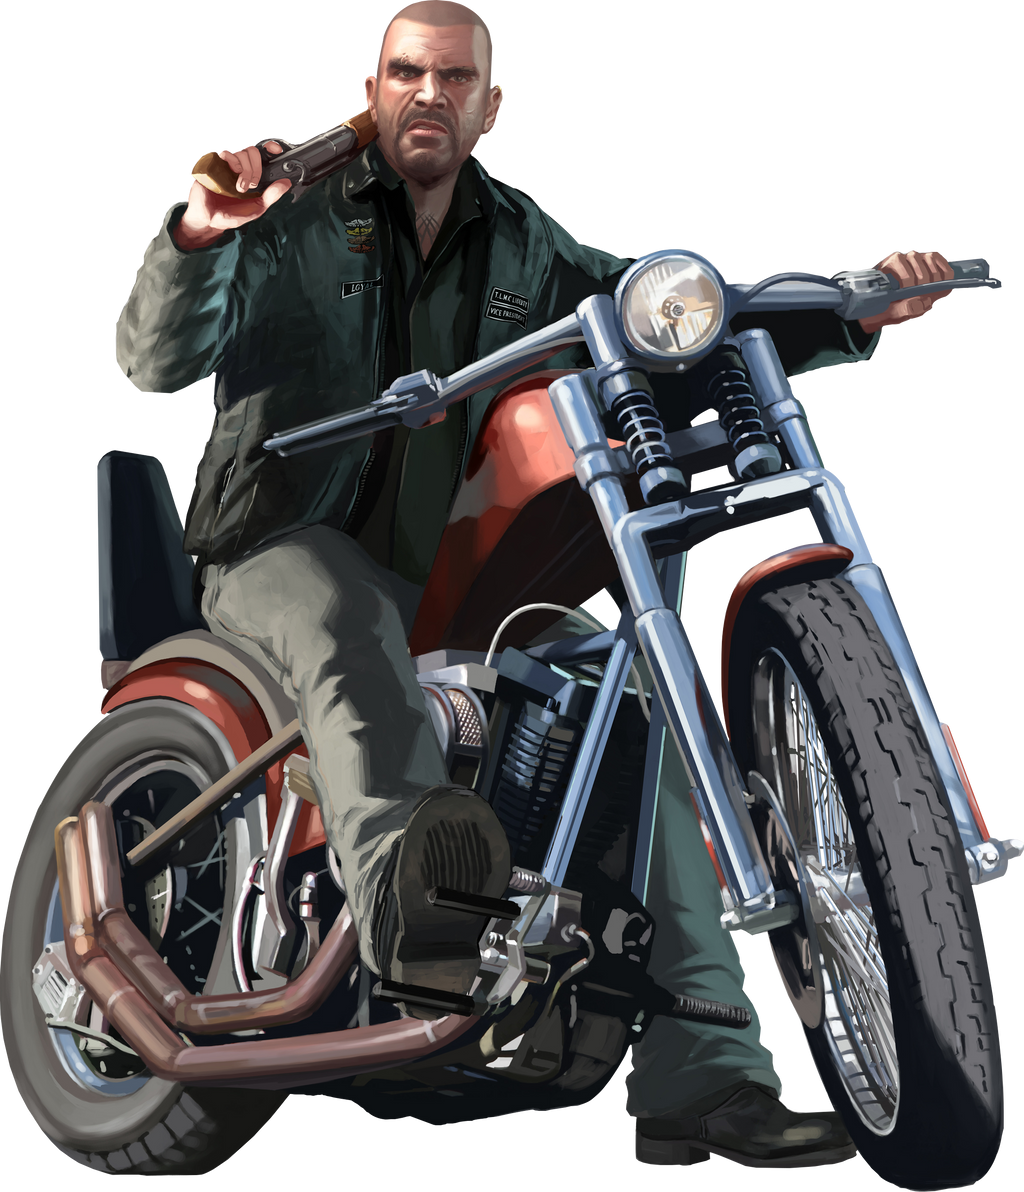 2015 brings Grand Theft Auto to VGU Gta_iv___johnny_klebitz_render_by_nardii-d65rhm3